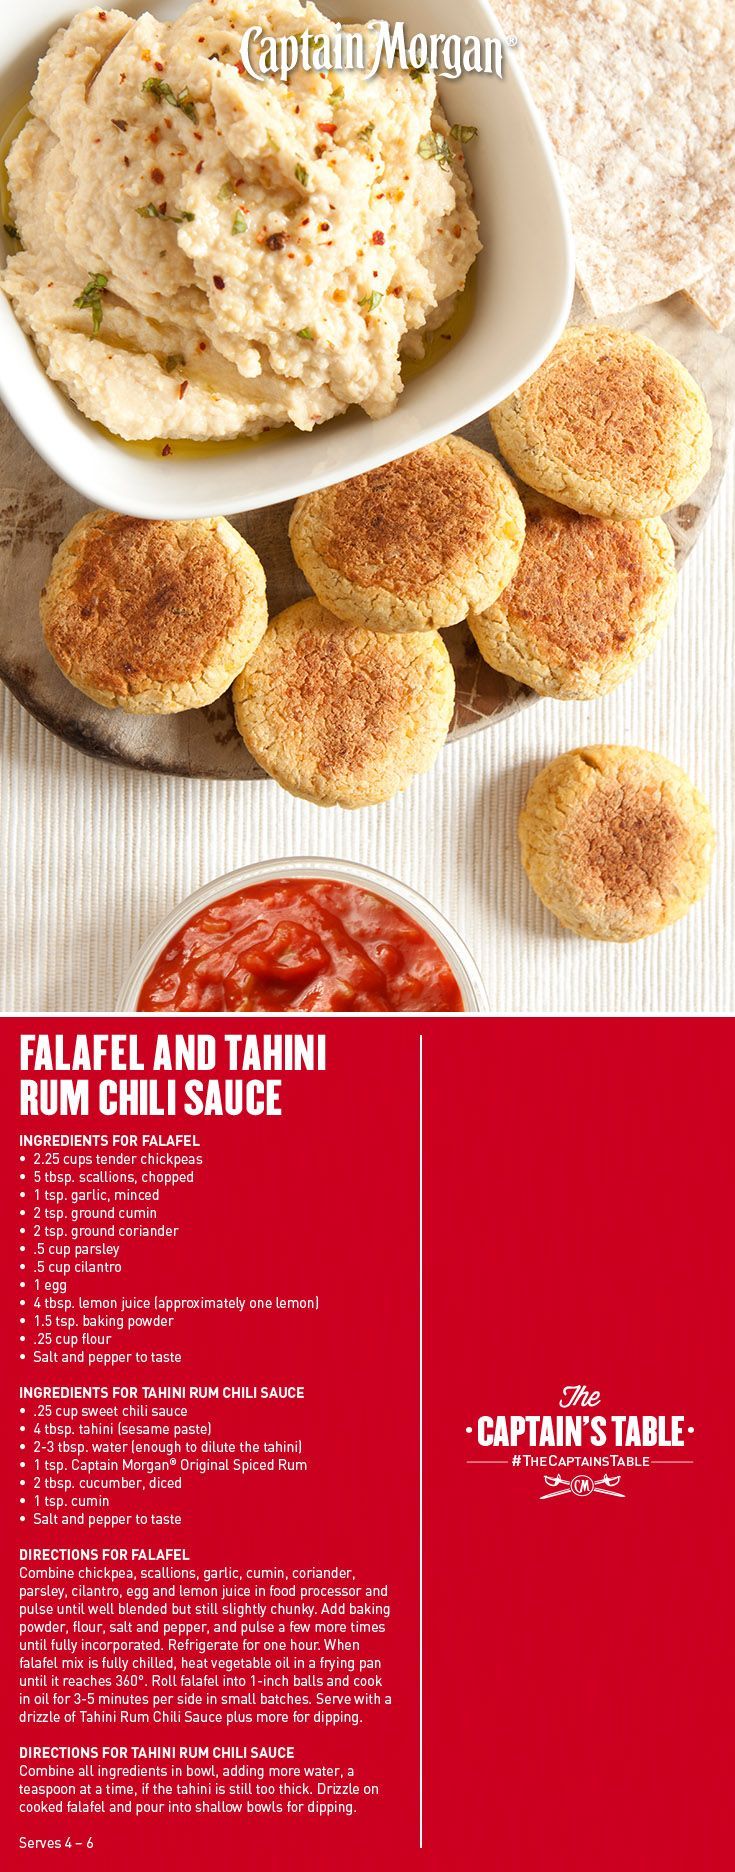 Falafel and Tahini Rum Chili Sauce: A Mediterranean delight with a fun ...